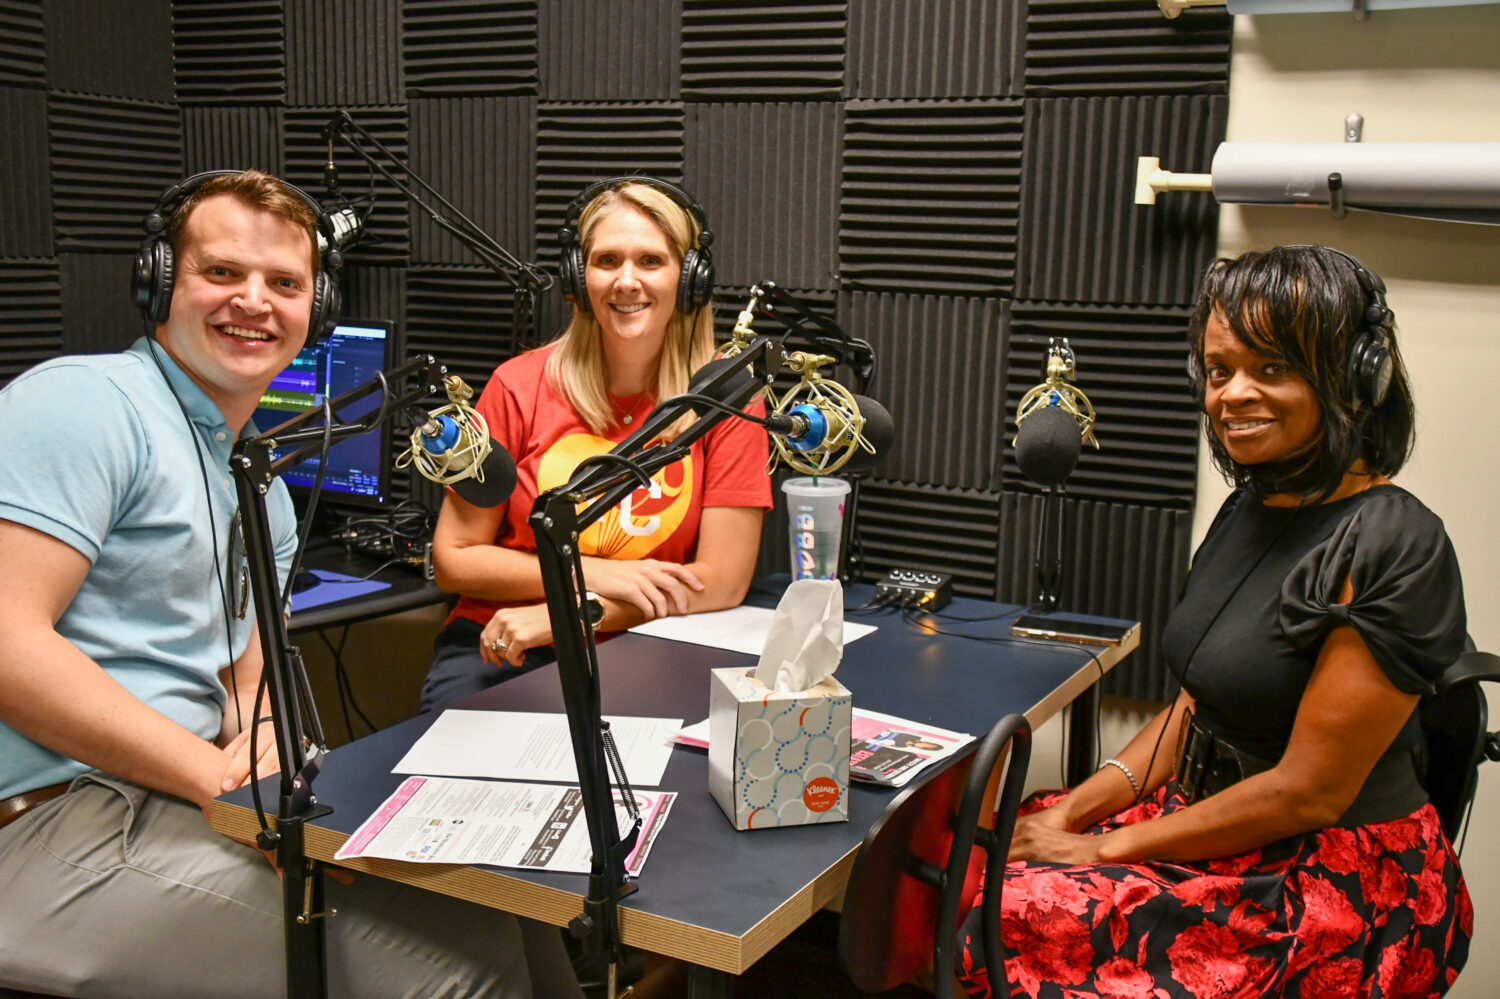 Image description: Kansas City RealTalk hosts Bobbi and Alex sit across the mics from safety expert Tracey Hawkins as they record a 2019 episode.